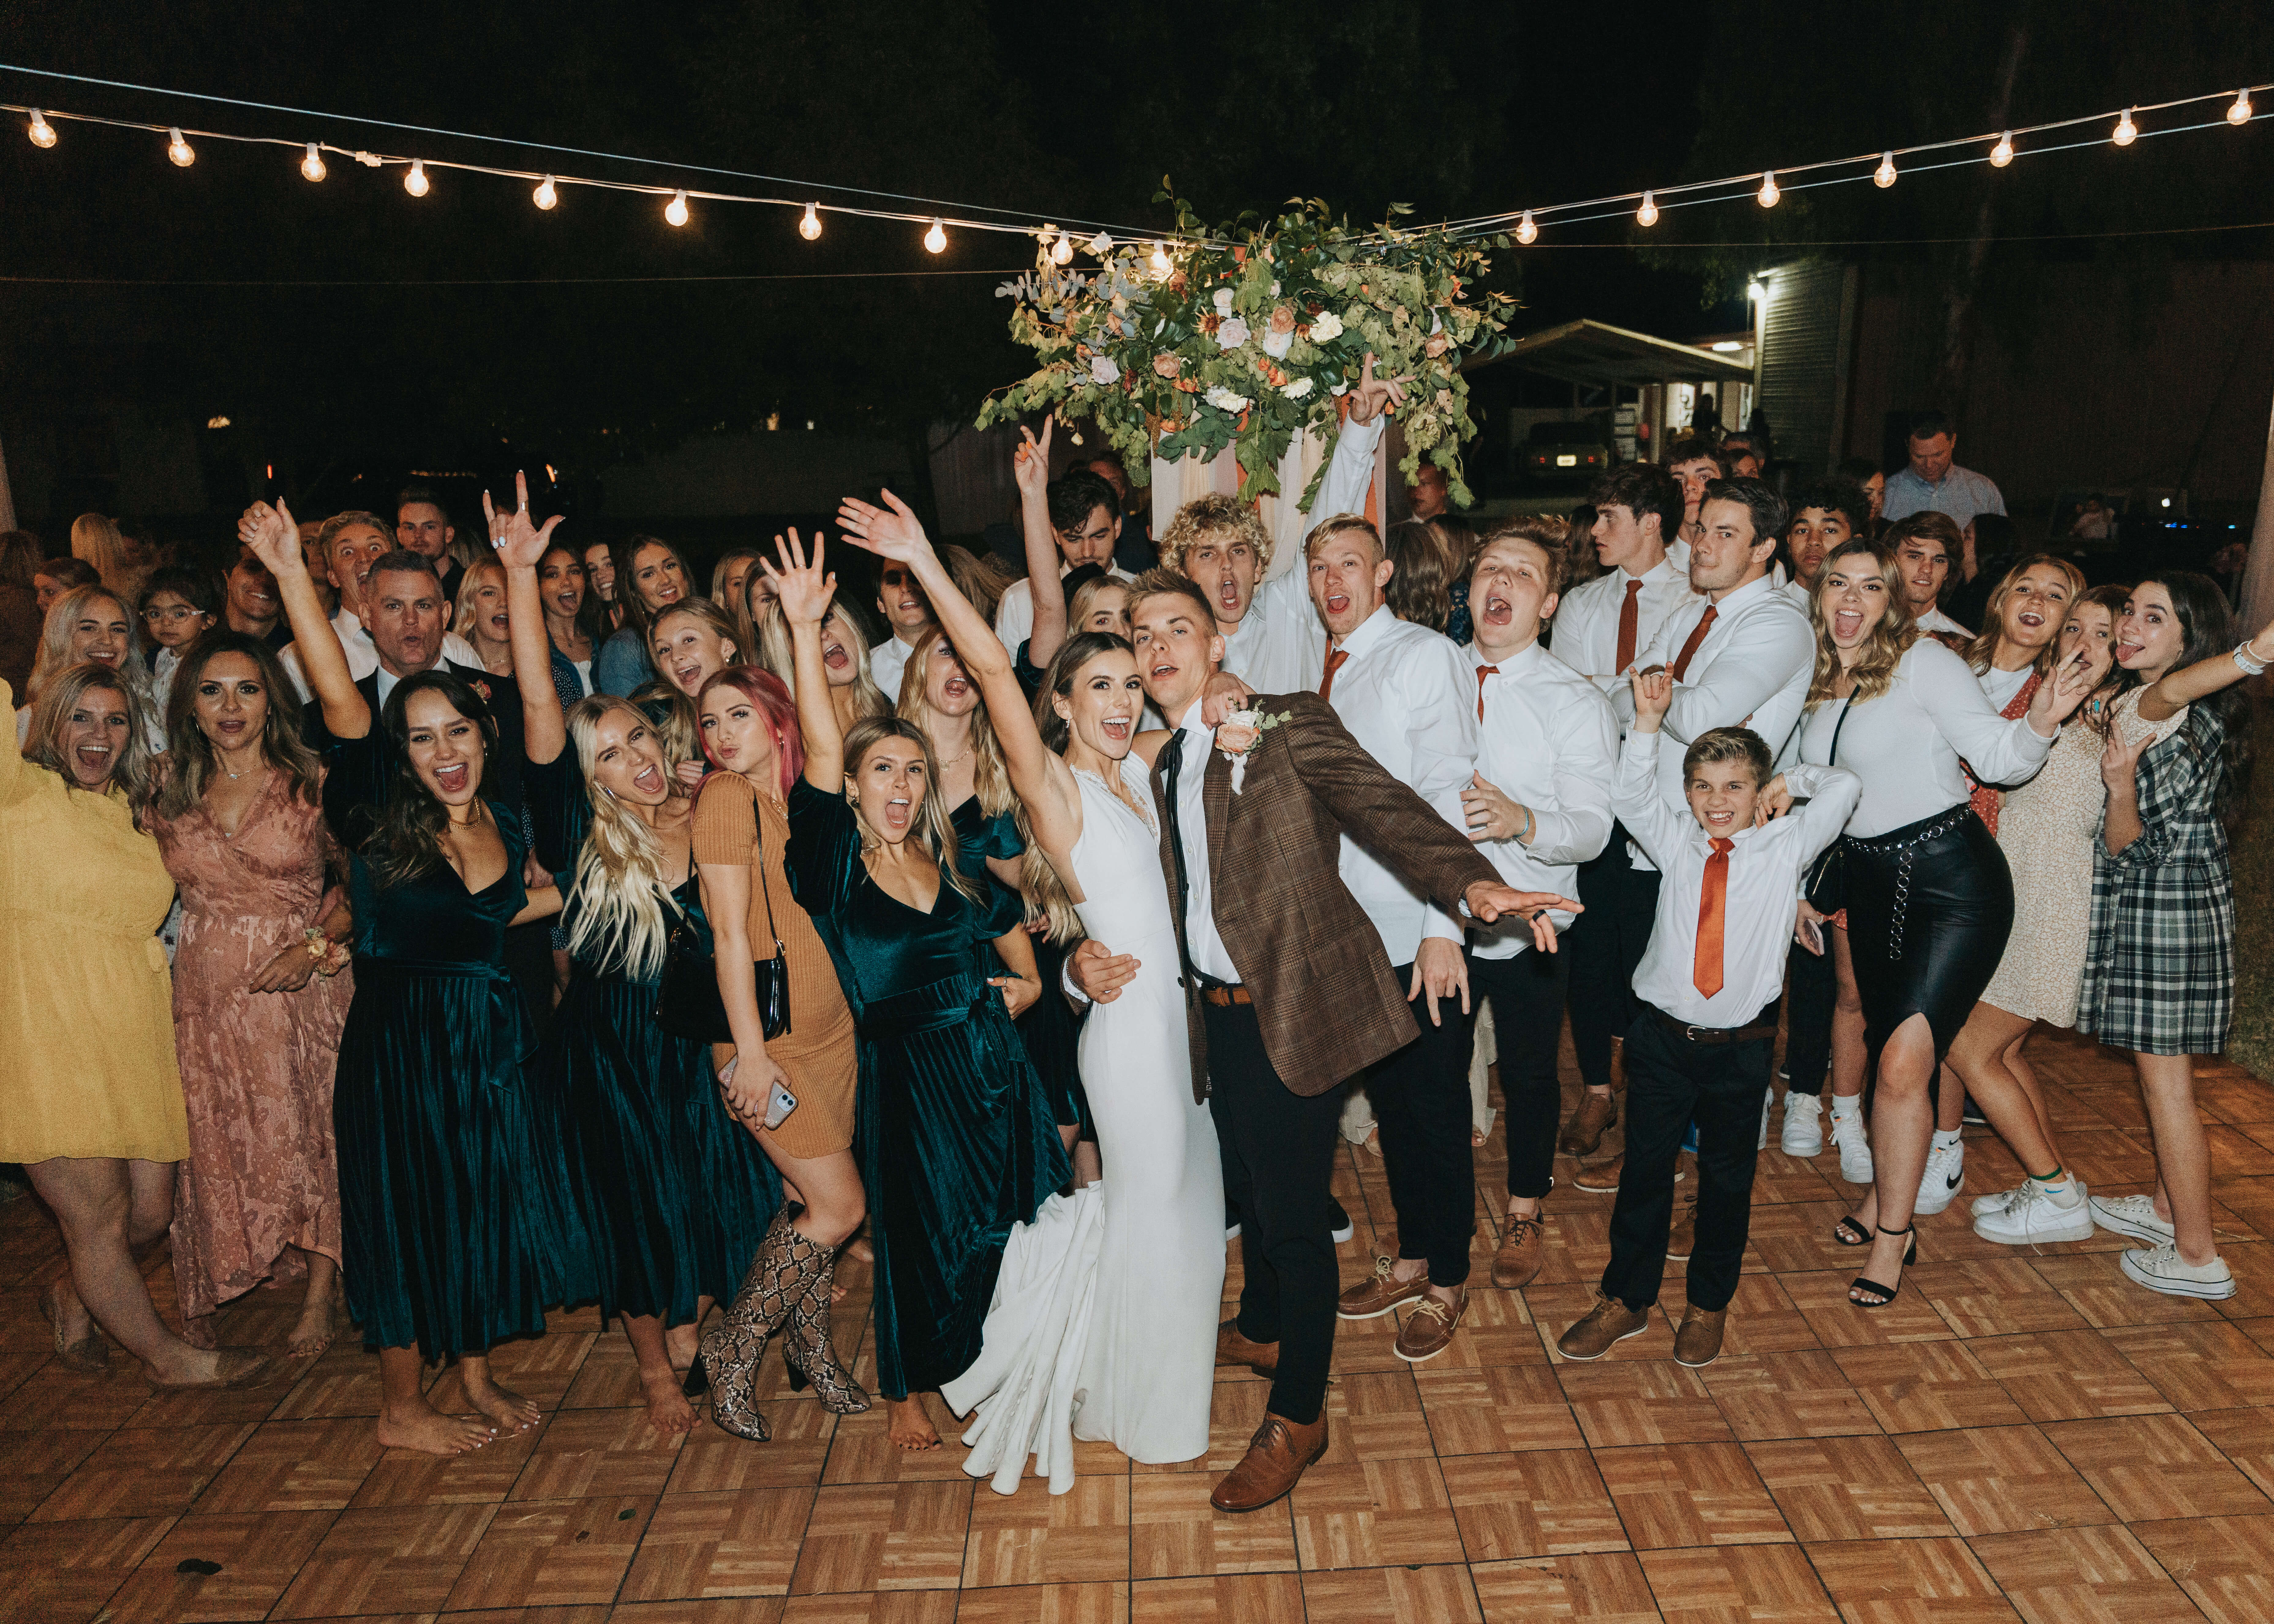 dancing with wedding party photo